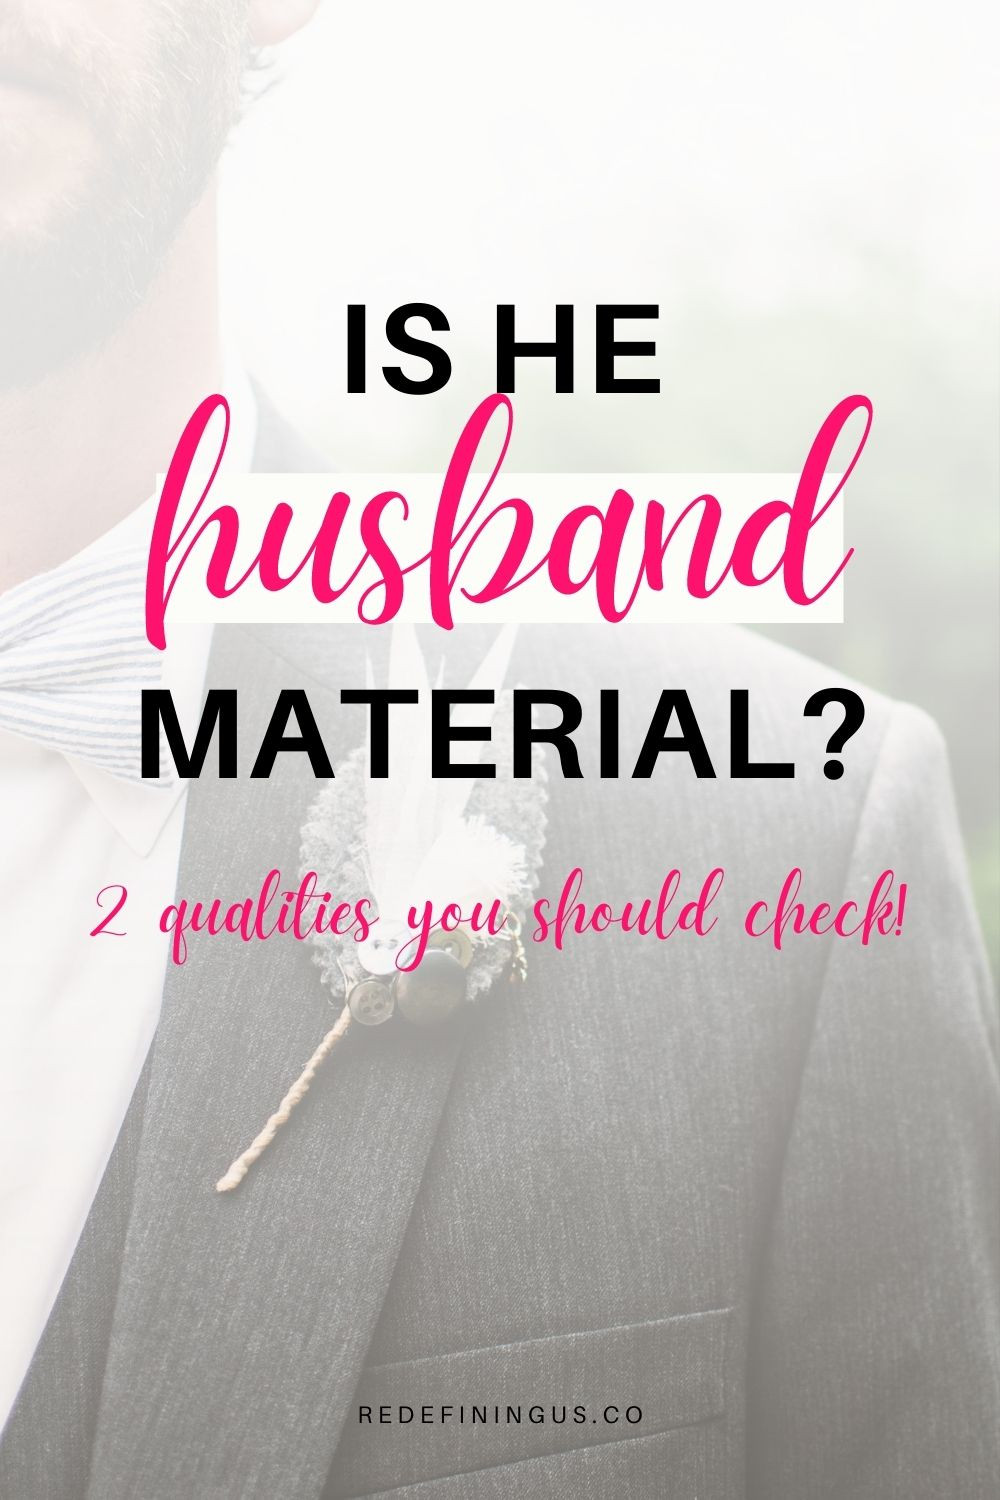 Is He Husband Material?